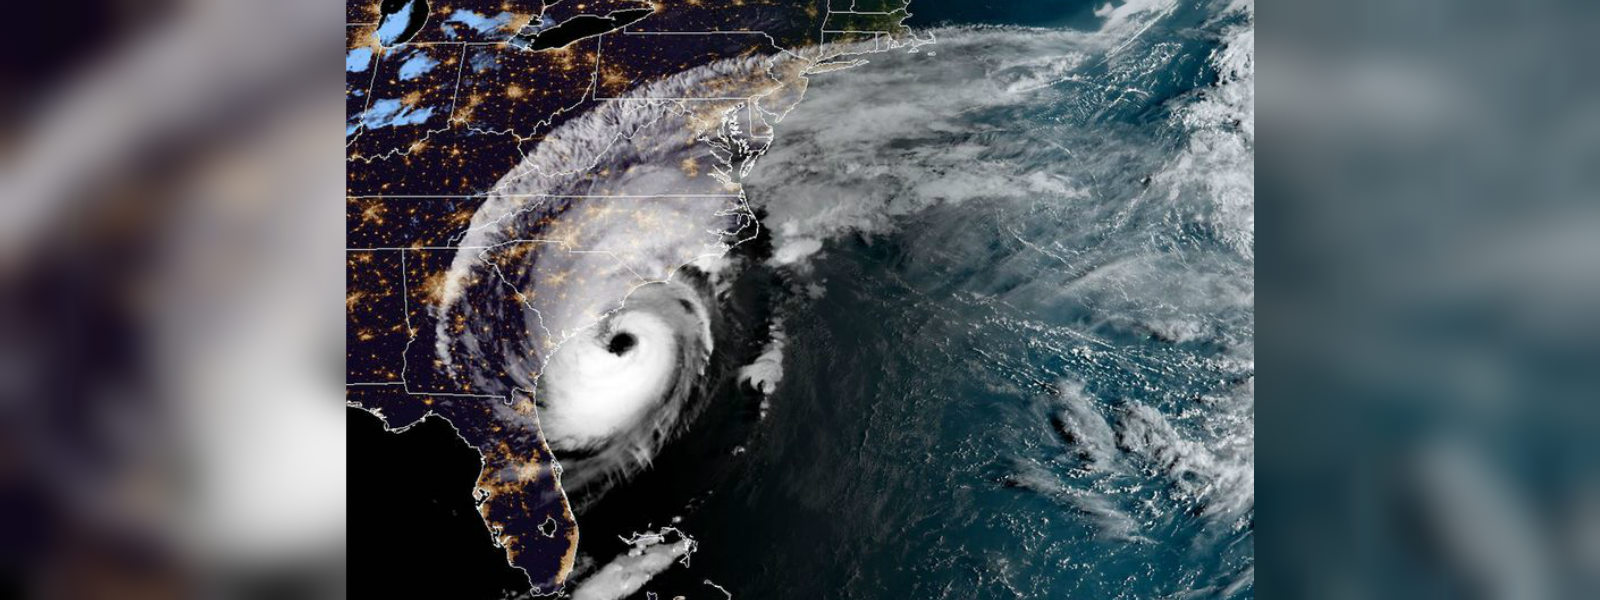 Tornado spins through North Carolina, hurrican Dorian remains close